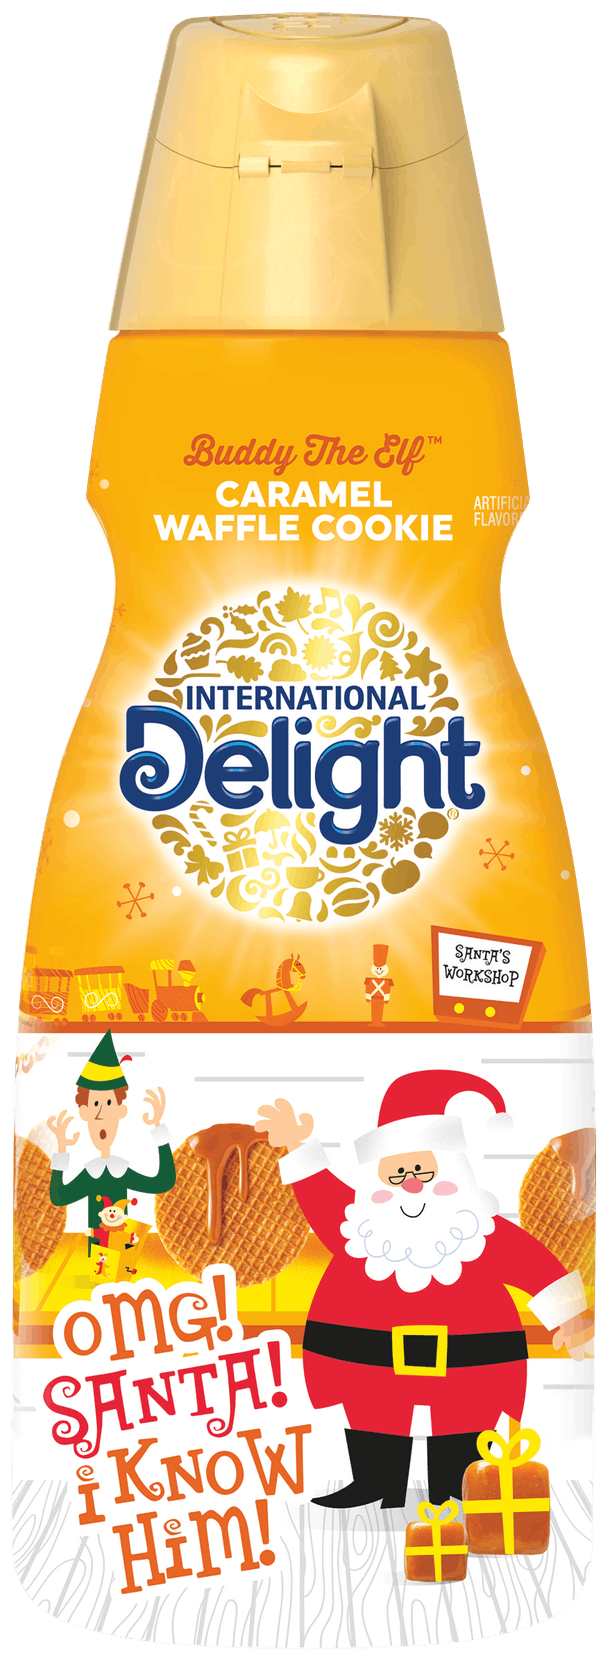 International Delight's 'Elf'-themed holiday 2020 coffee creamers feature a new caramel waffle cookie flavor.